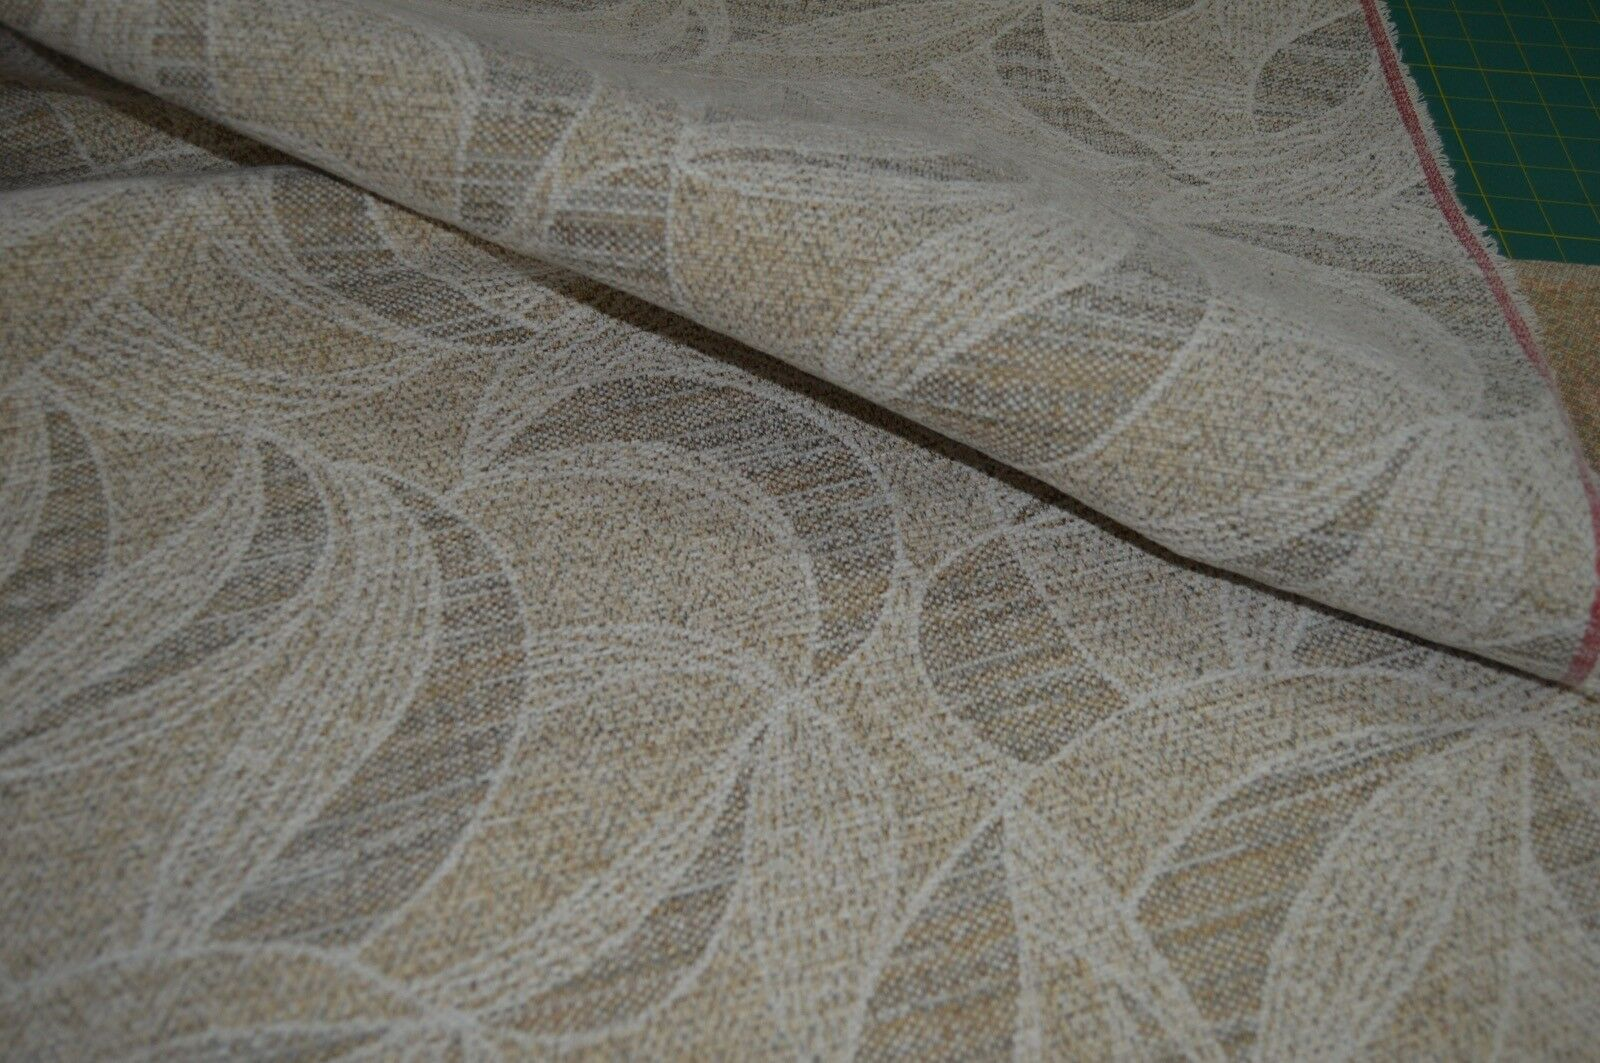 beige grey cream chenille upholstery fabric robust durable ...